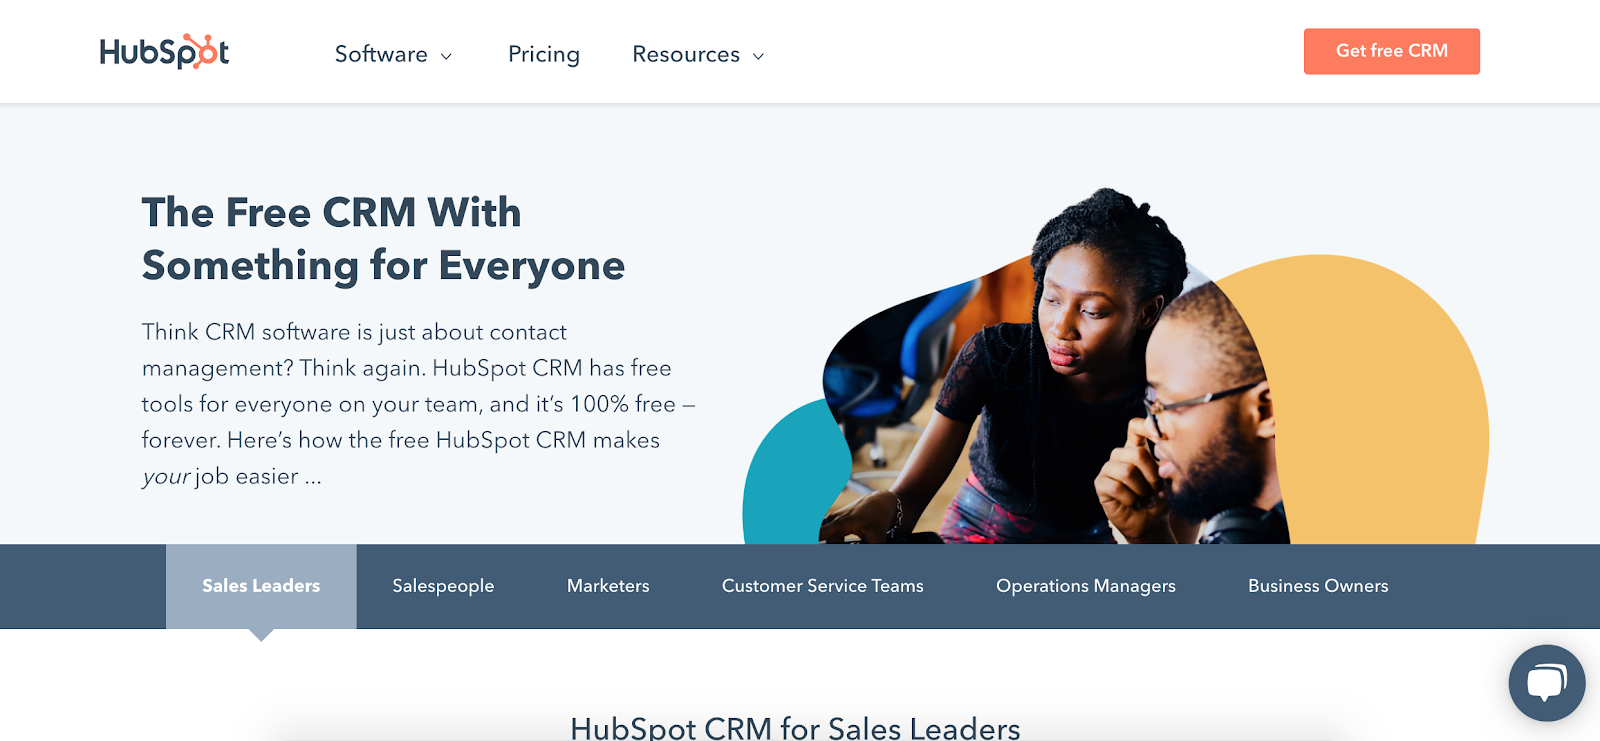 HubSpot free CRM homepage